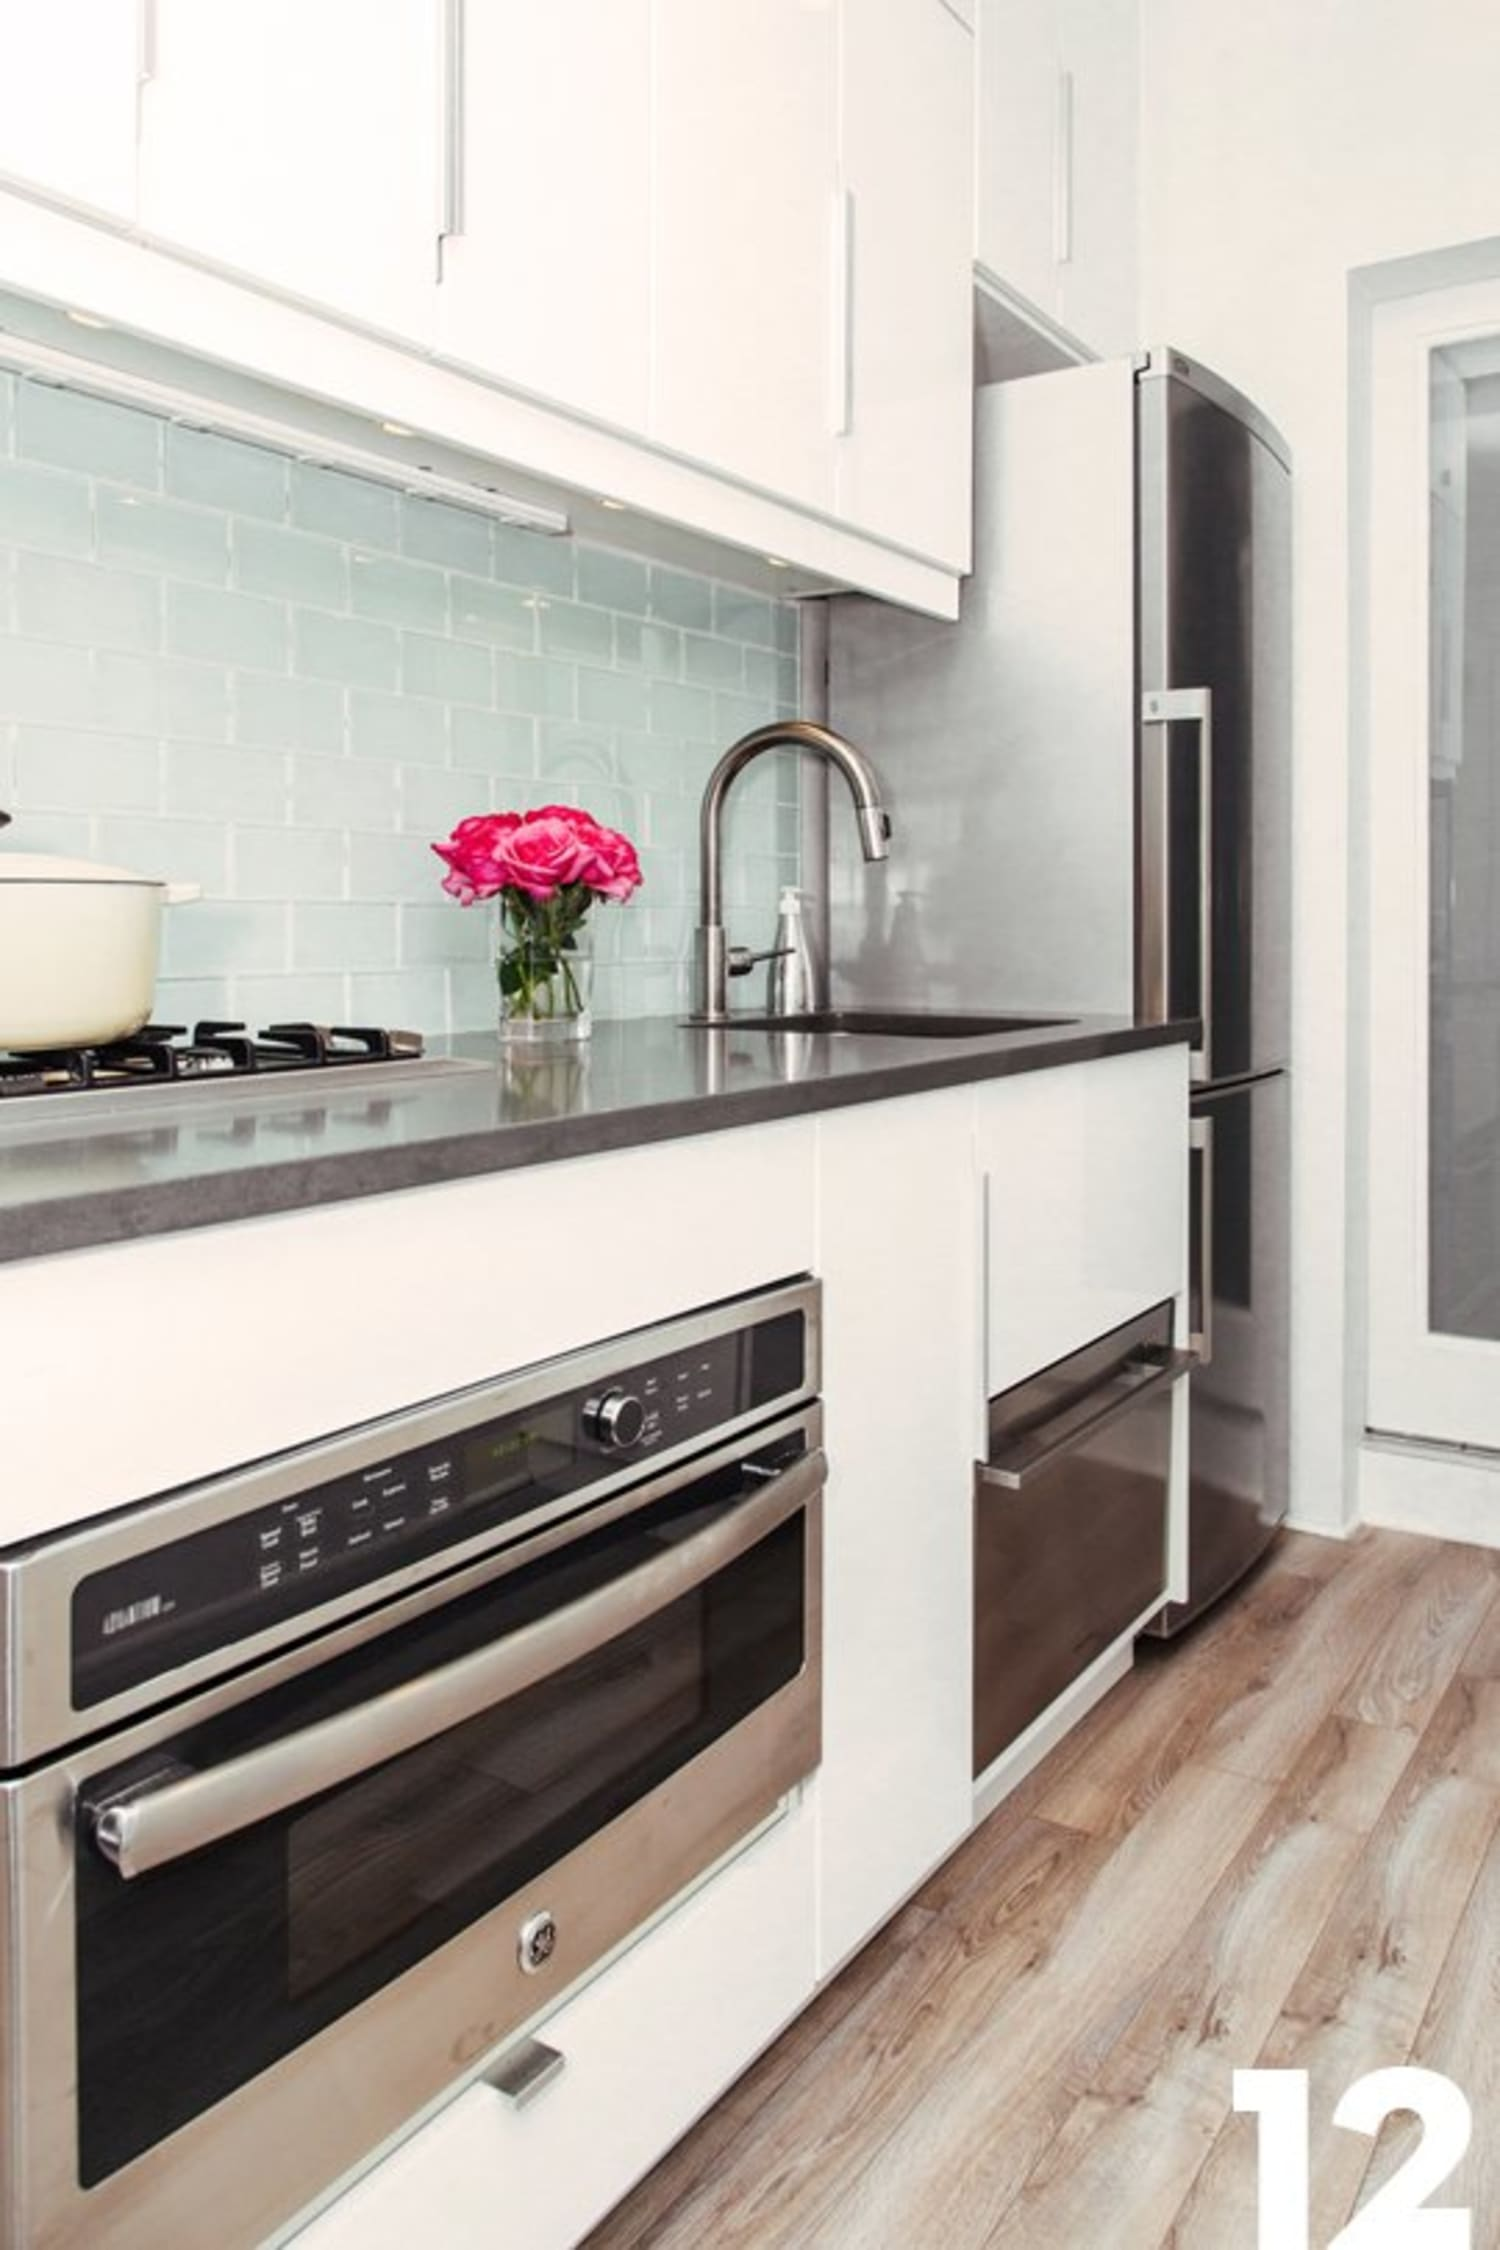 Jennifer's Kitchen Renovation: What It Really Cost - A ...